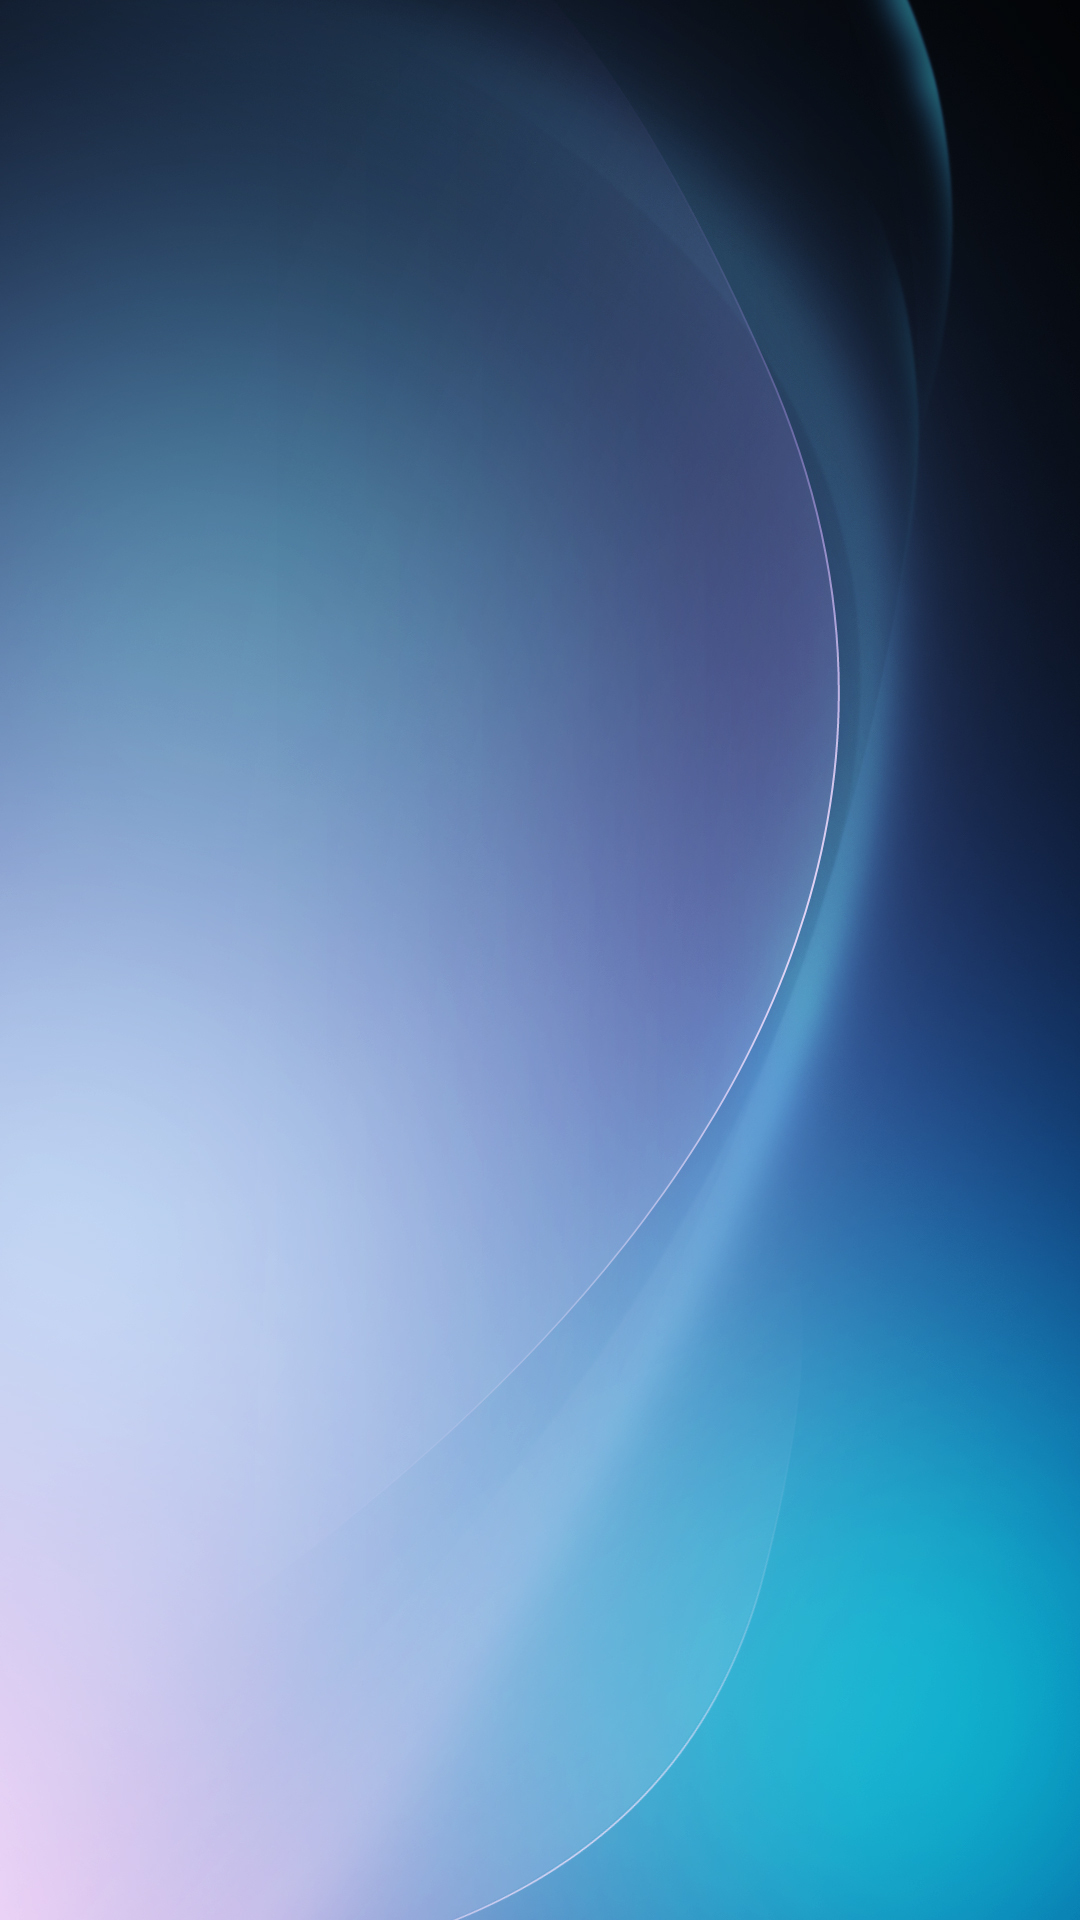 Free Download Abstract Blue Wave Android Wallpaper Download 1080x1920 For Your Desktop Mobile Tablet Explore 75 Android Blue Wallpaper Deep Blue Wallpaper Dark Blue Wallpapers Hd Blue Sea Wallpaper